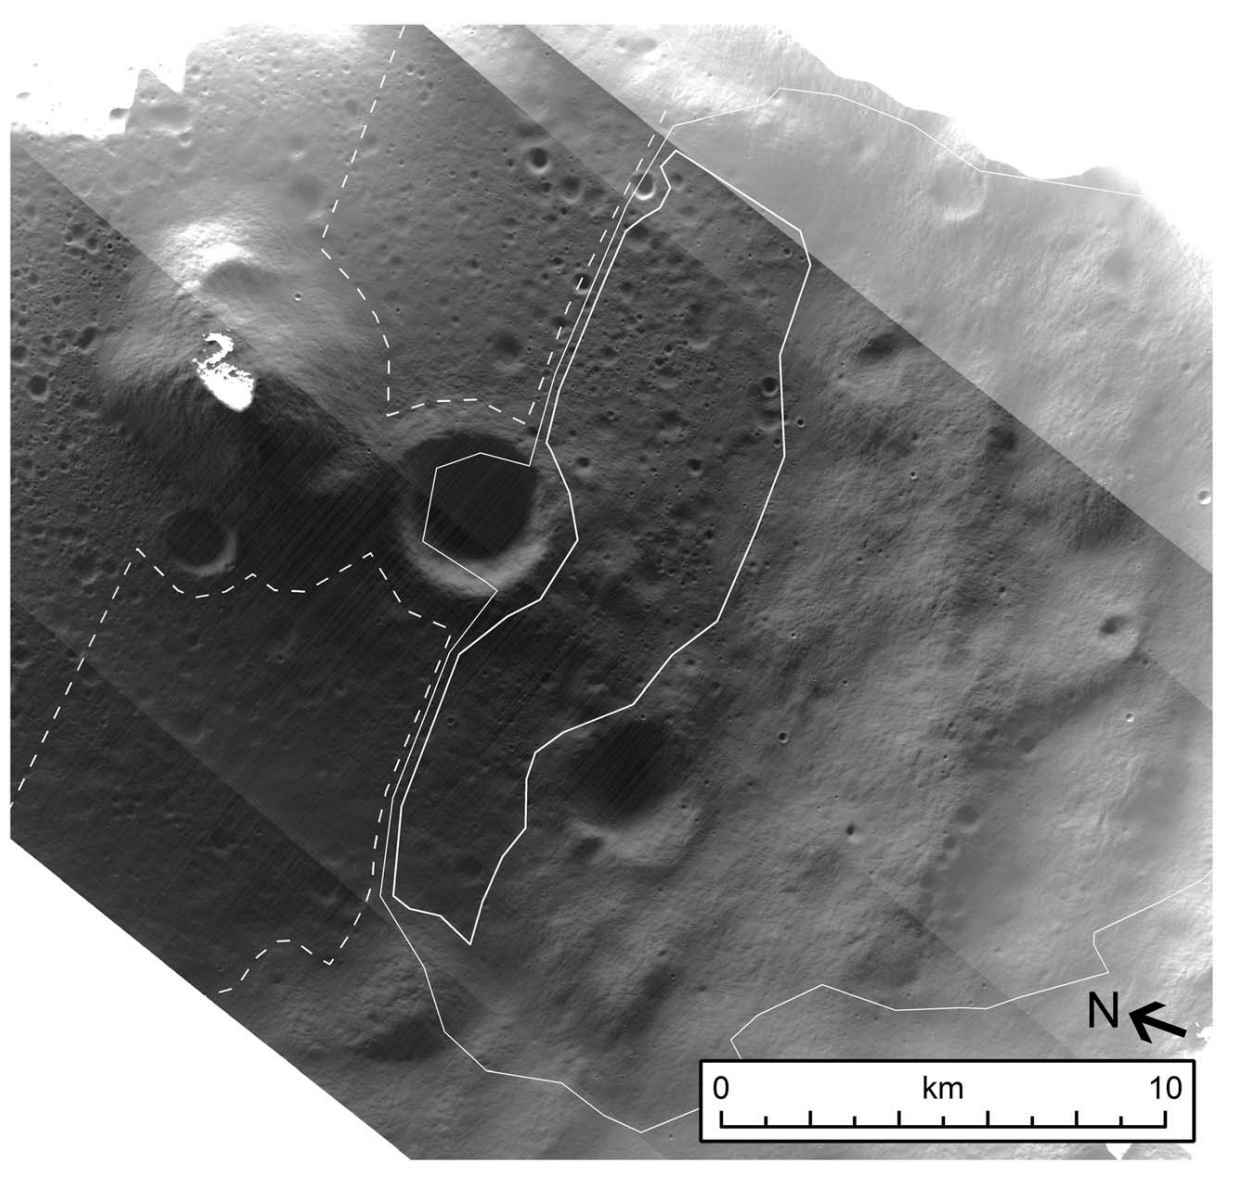 Image of the surface of a permanently shadowed region (PSR). No boulders over the size of 20 m were identified within this PSR, which might interfere with LOLA measurements. The LROC NAC captured this long exposure image using sunlight reflected from surrounding regions to illuminate the shadowed areas (bold white area). Credit: Qiao et al., 2019, Figure 9.